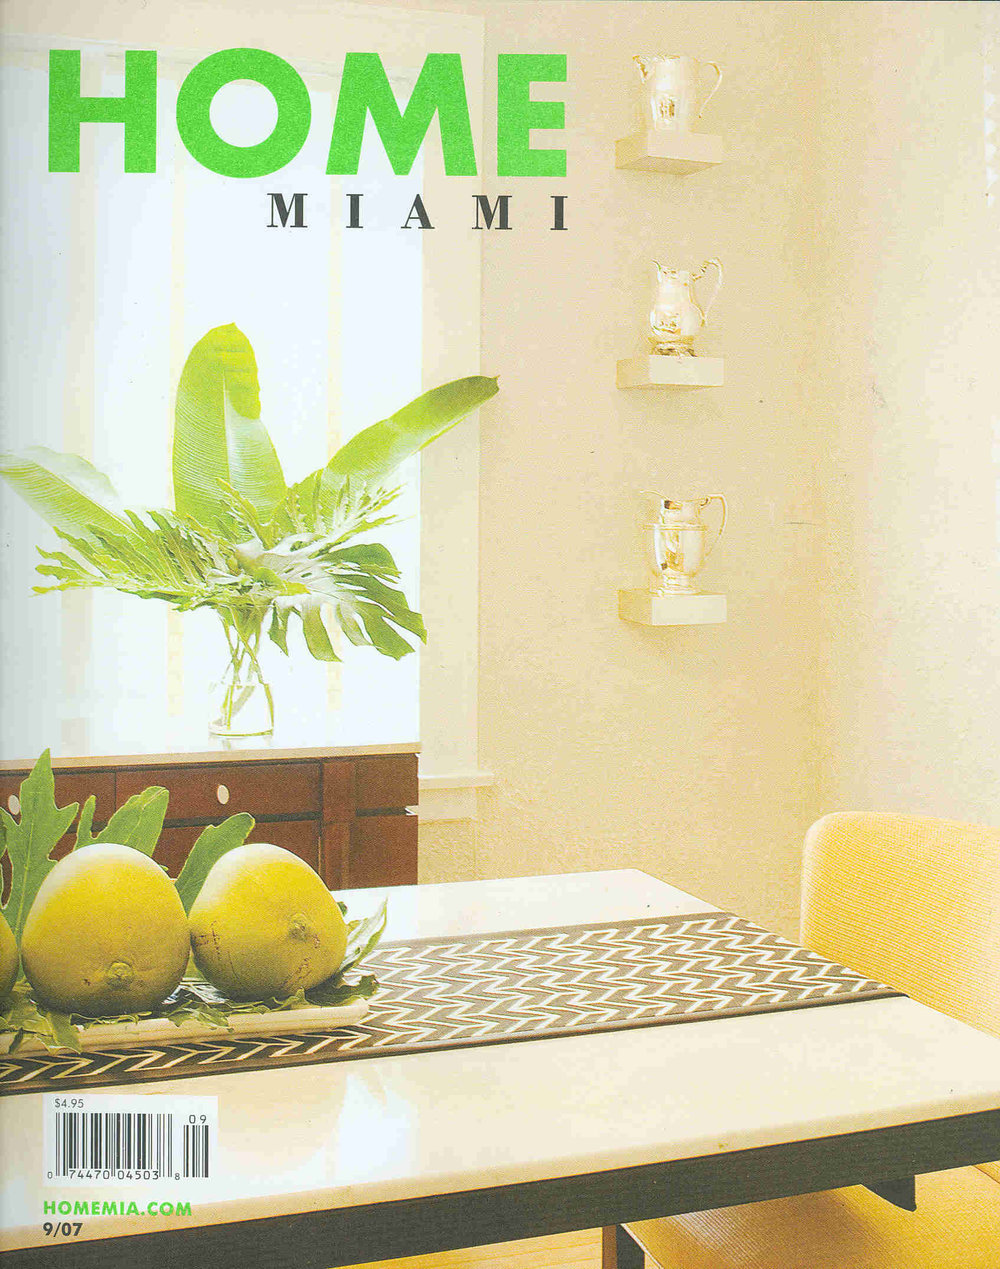 Home Miami September 2007 cover.jpg